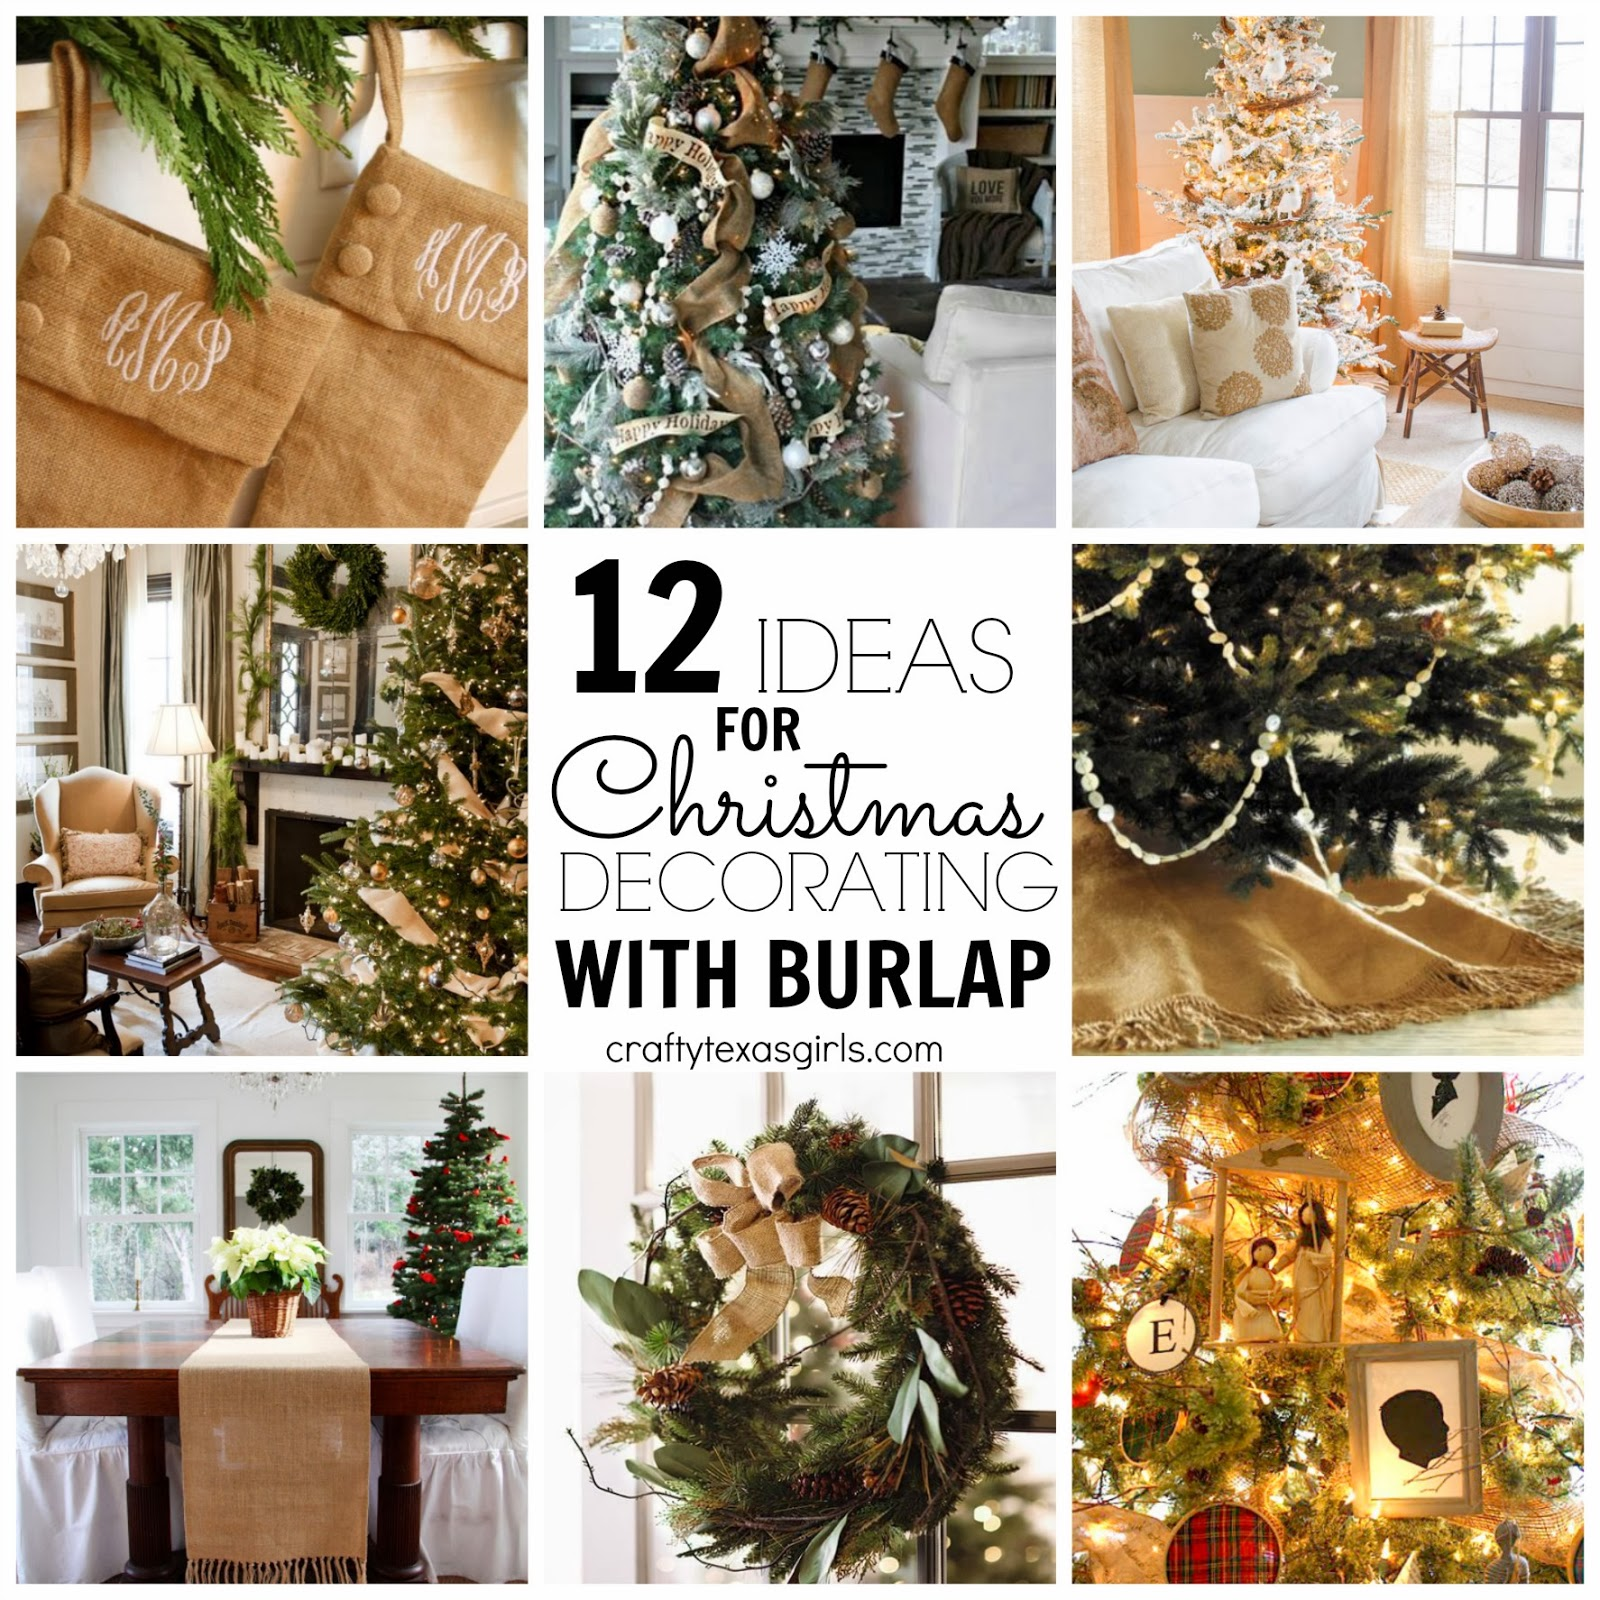 Burlap Design Ideas: Crafty Texas Girls: 12 Ideas For Christmas Decorating With